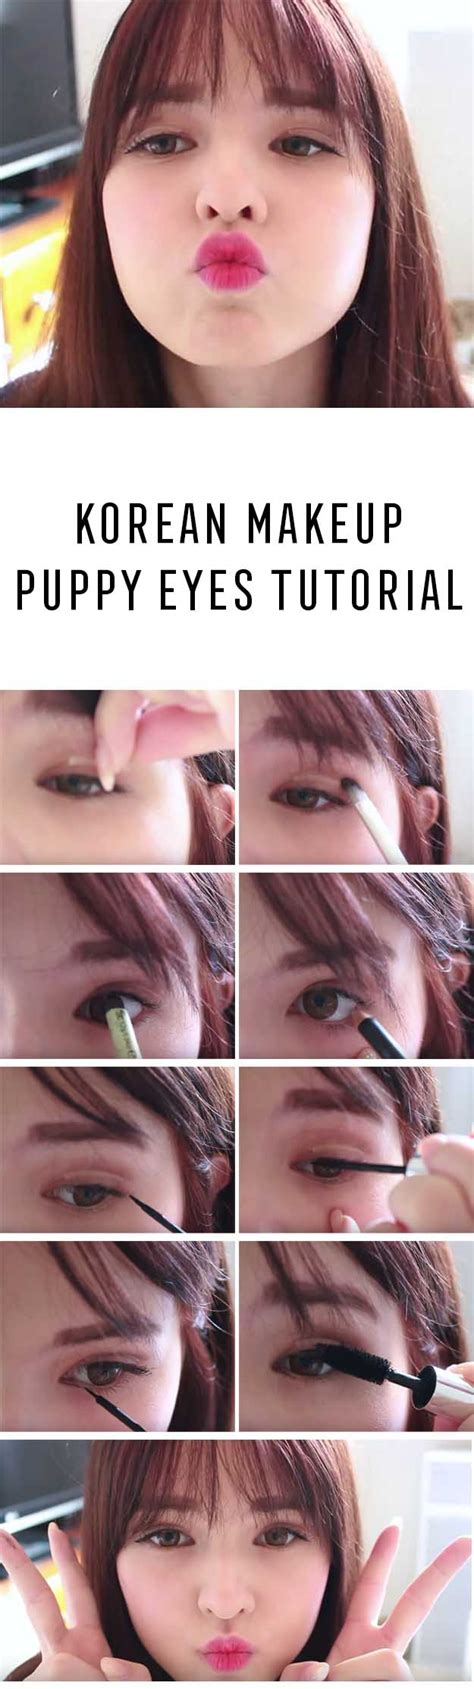 37 Best Korean Makeup Tutorials   The Goddess